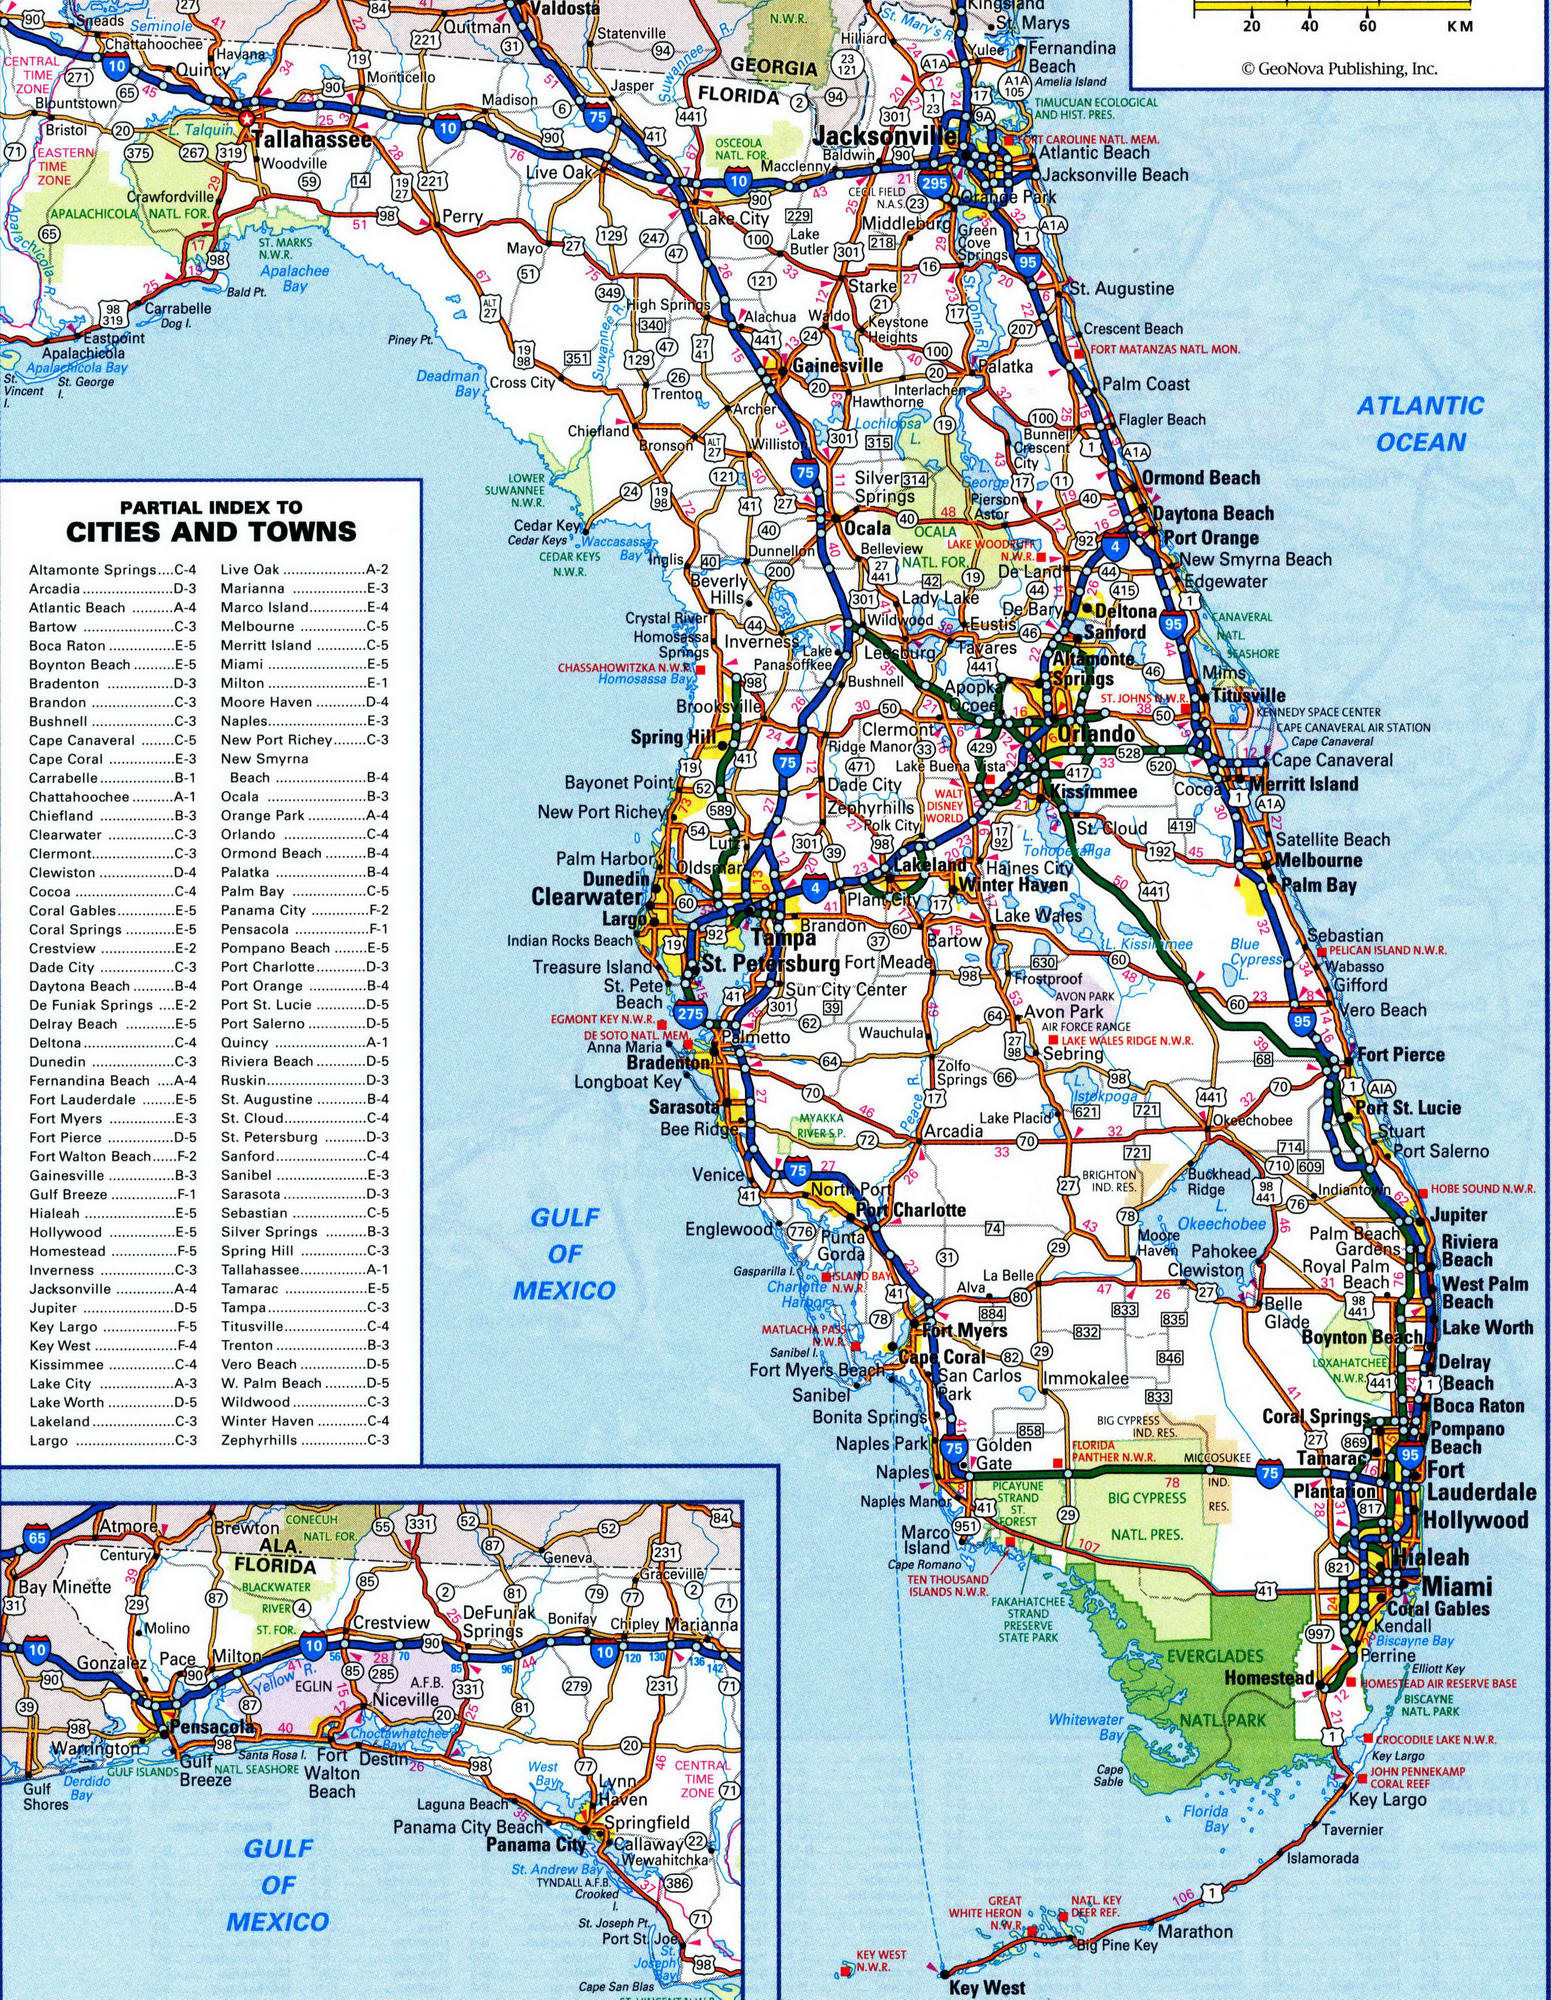 Us West Coast Counties Map Florida Road Map New Detailed Map Florida - Florida Road Map 2018